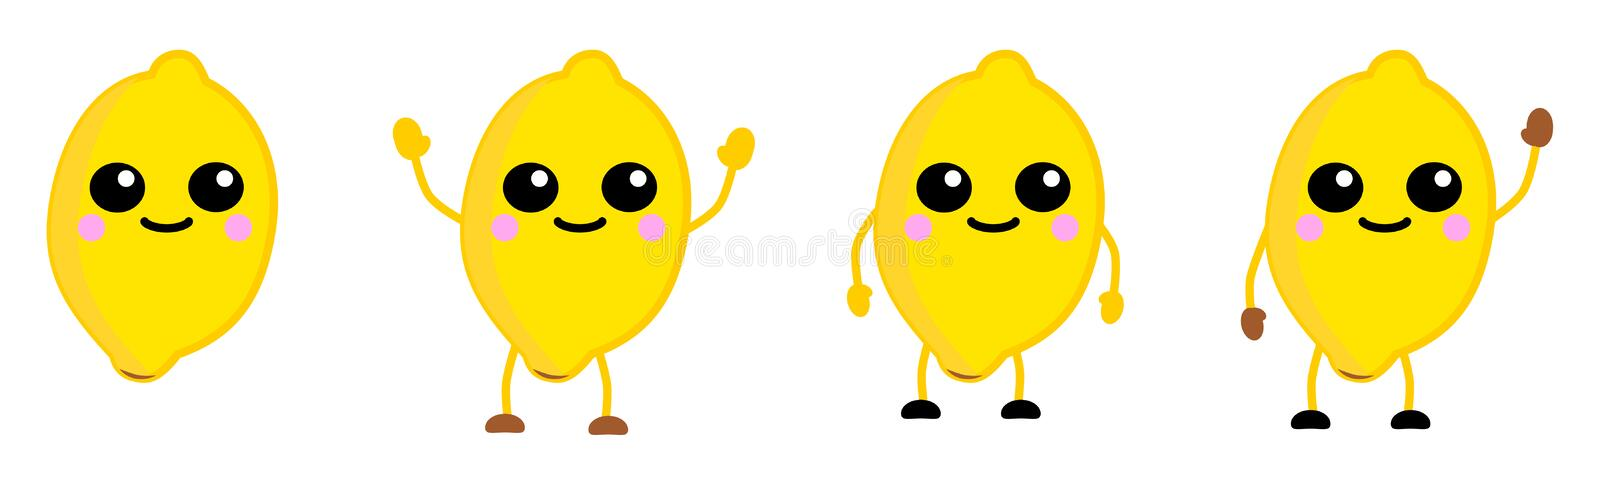 Cute kawaii style lemon fruit icon, large eyes, smiling. Version with hands raised, down and waving. stock illustration